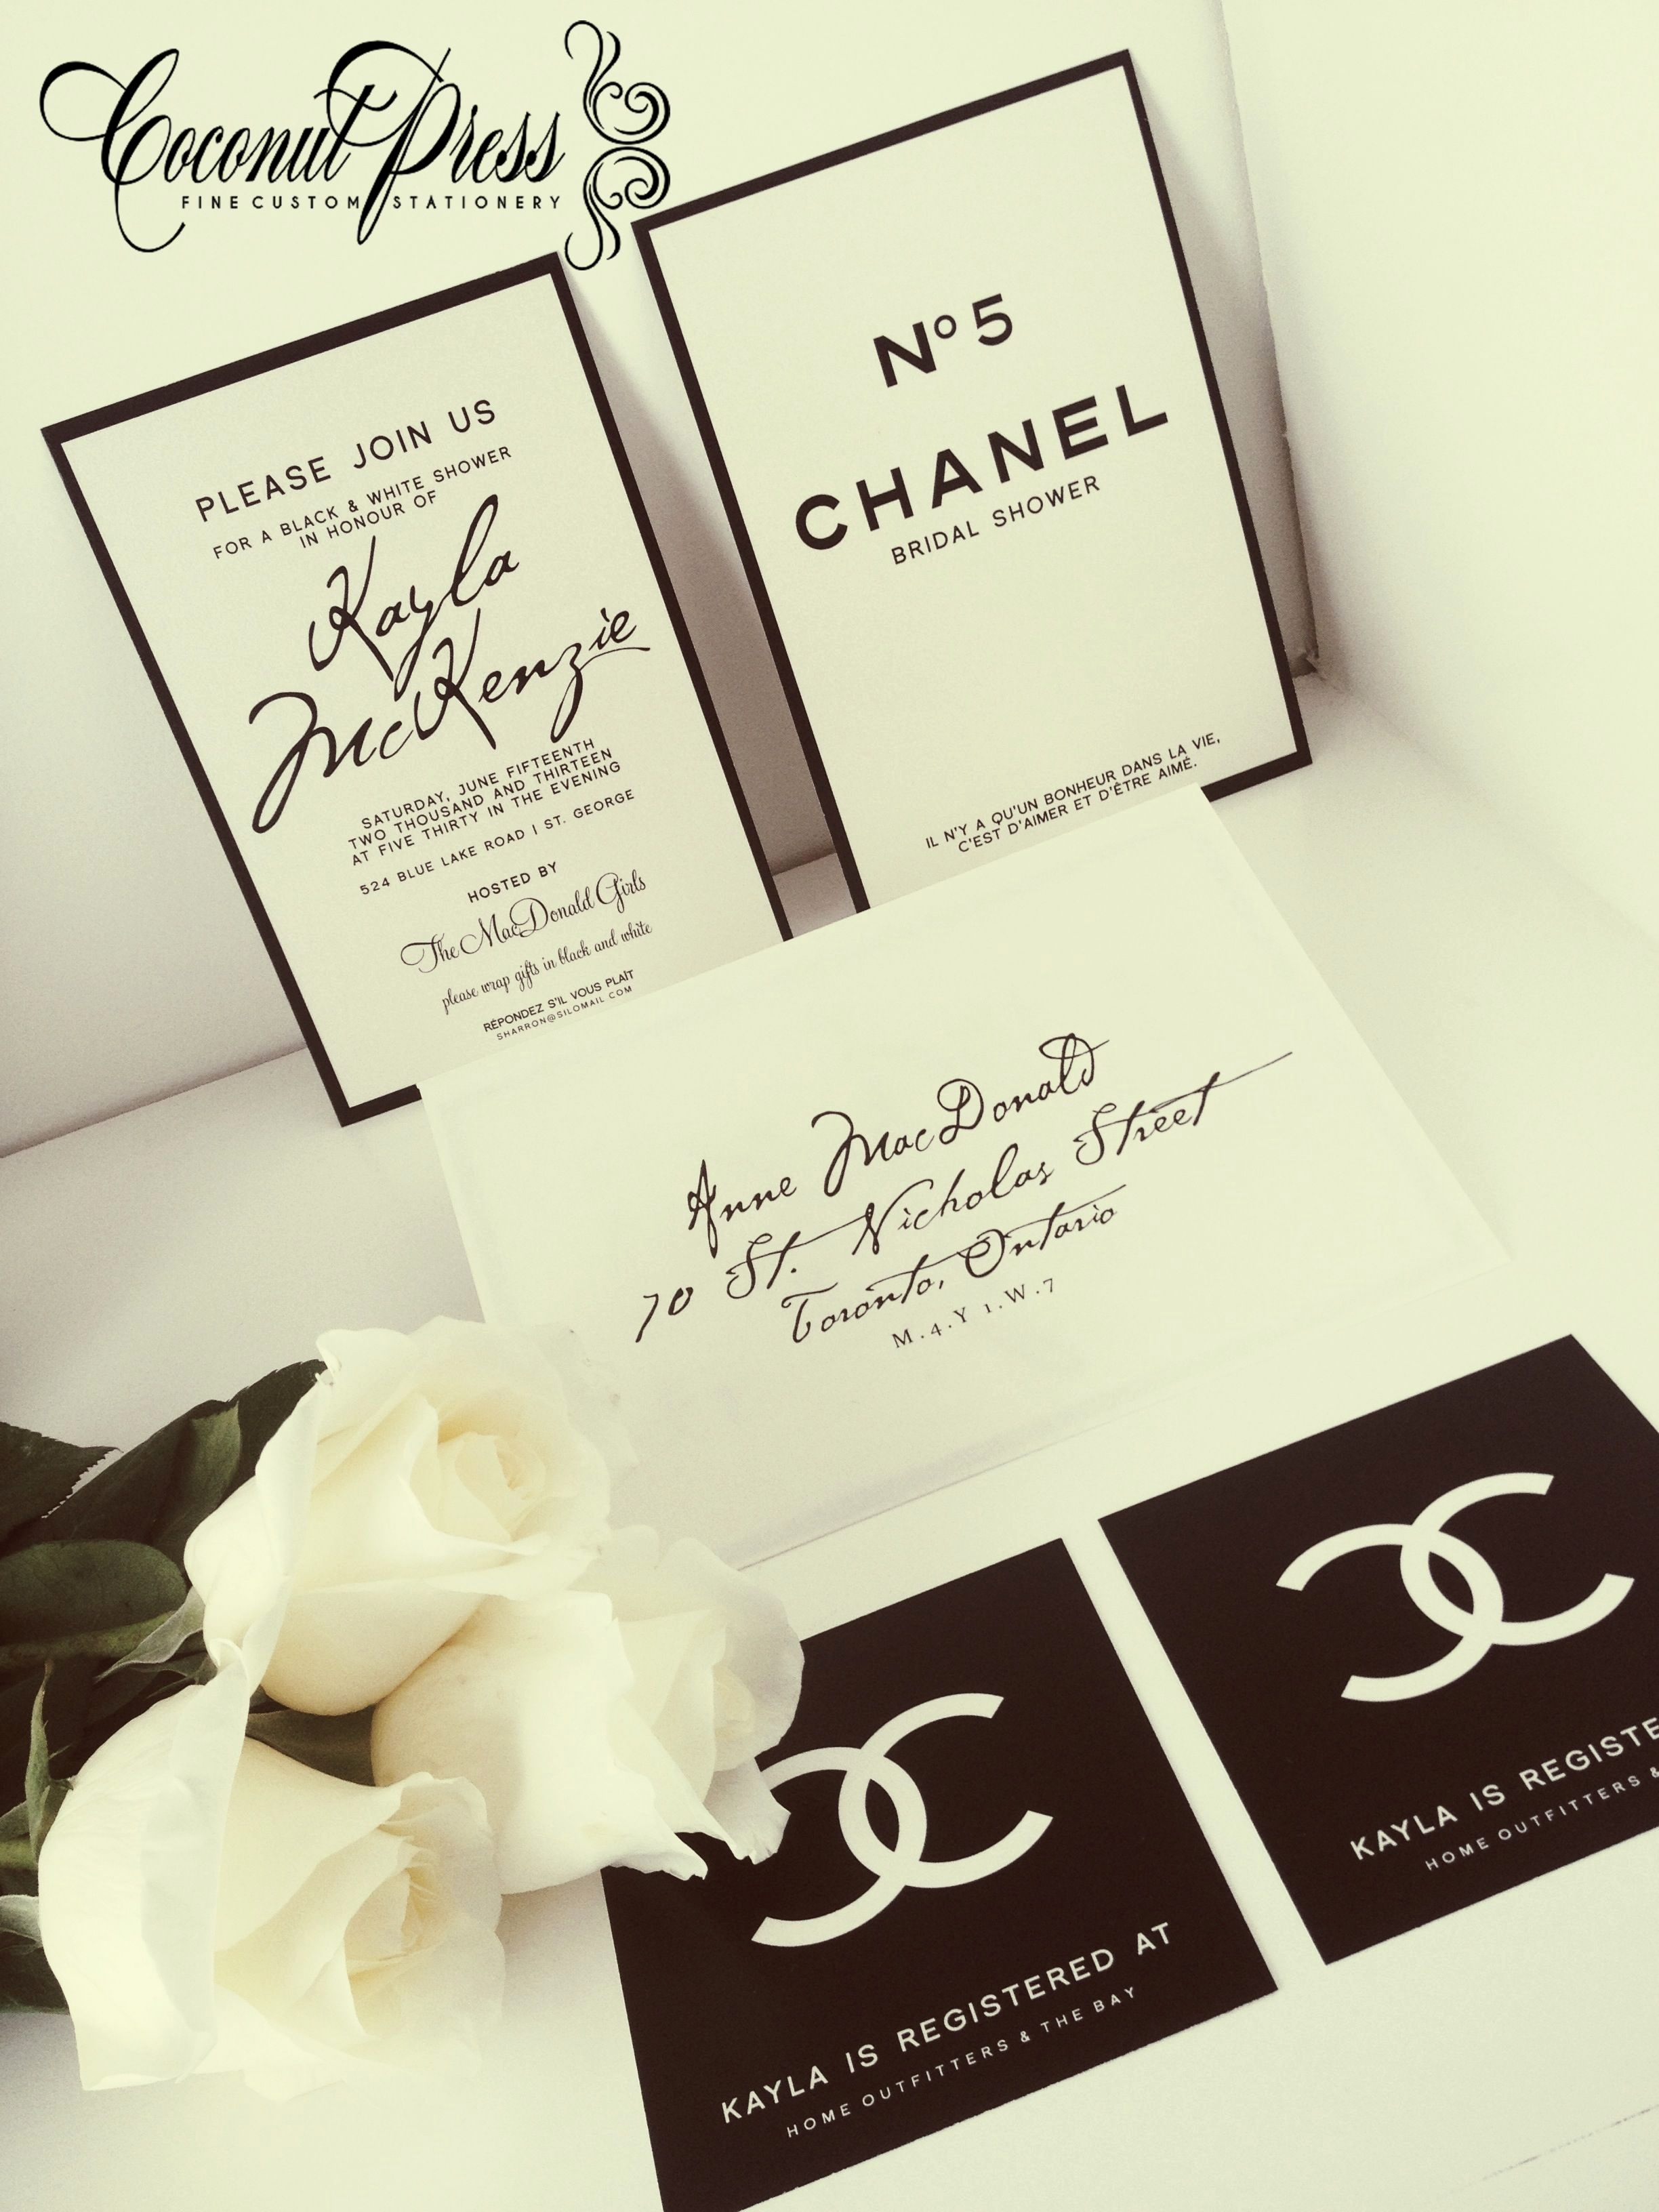 Coco Chanel Invitation Templates New Coco Chanel Inspired Black & White Shower Invitations